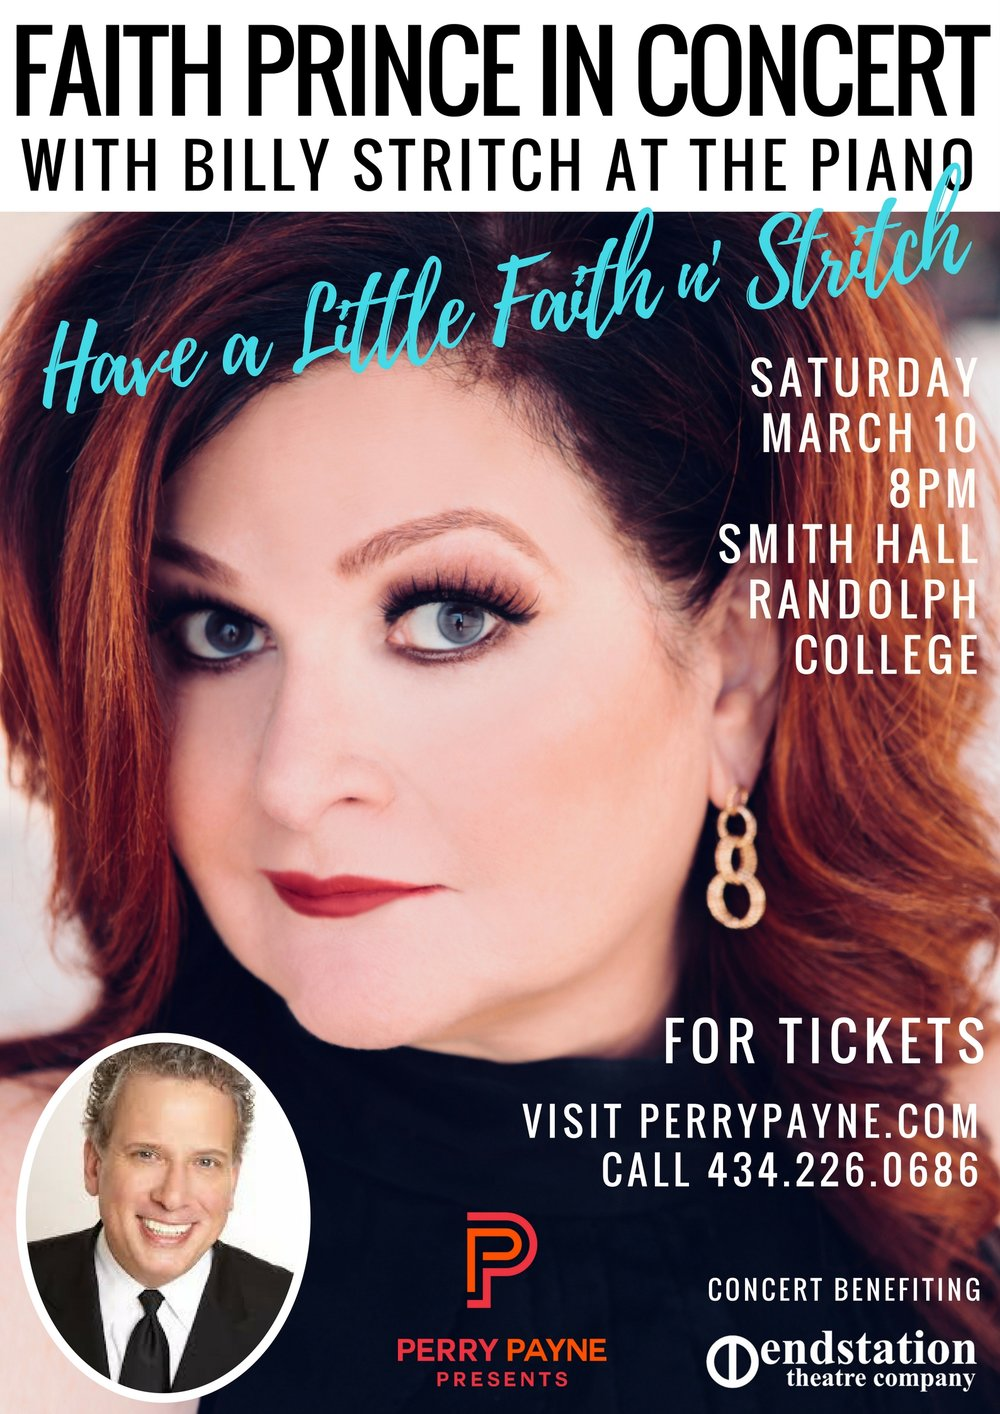 Faith Prince in ConcertHave a Little faith n' stritch  - 8PMSaturday March 10, 2018Smith Hall TheaterRandolph College